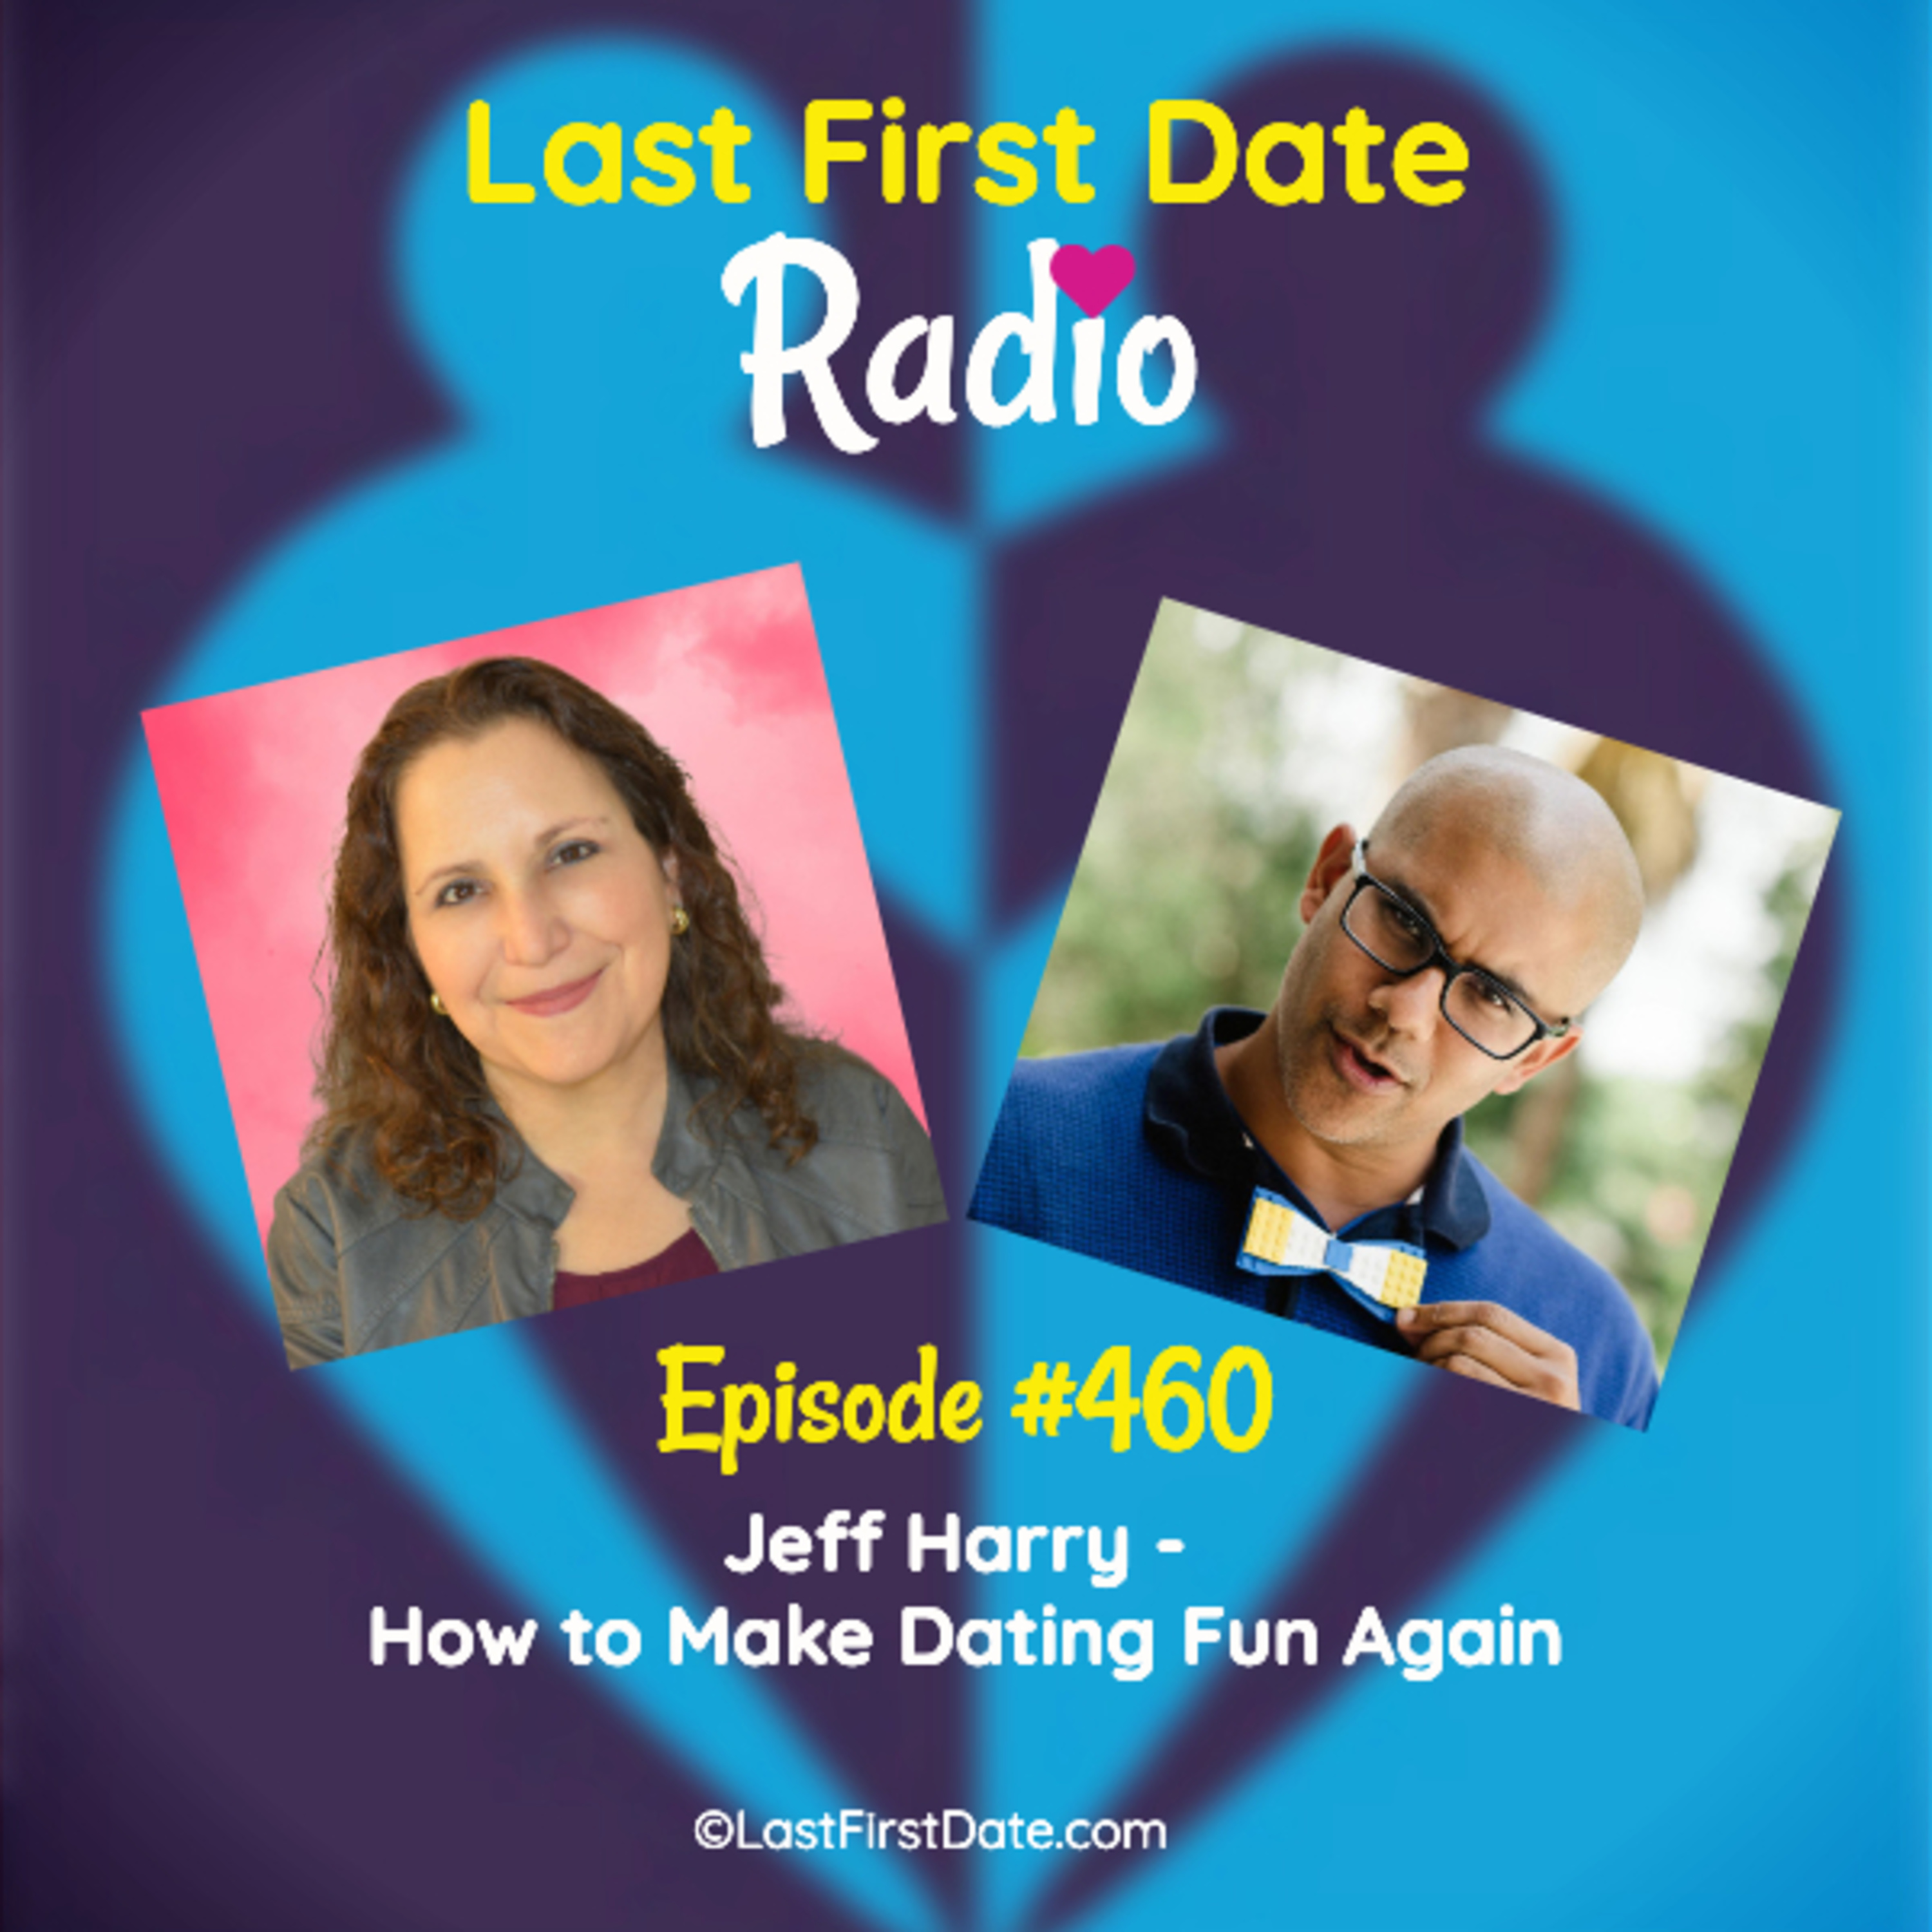 Last First Date Radio - EP 460: Jeff Harry - How to Make Dating Fun Again